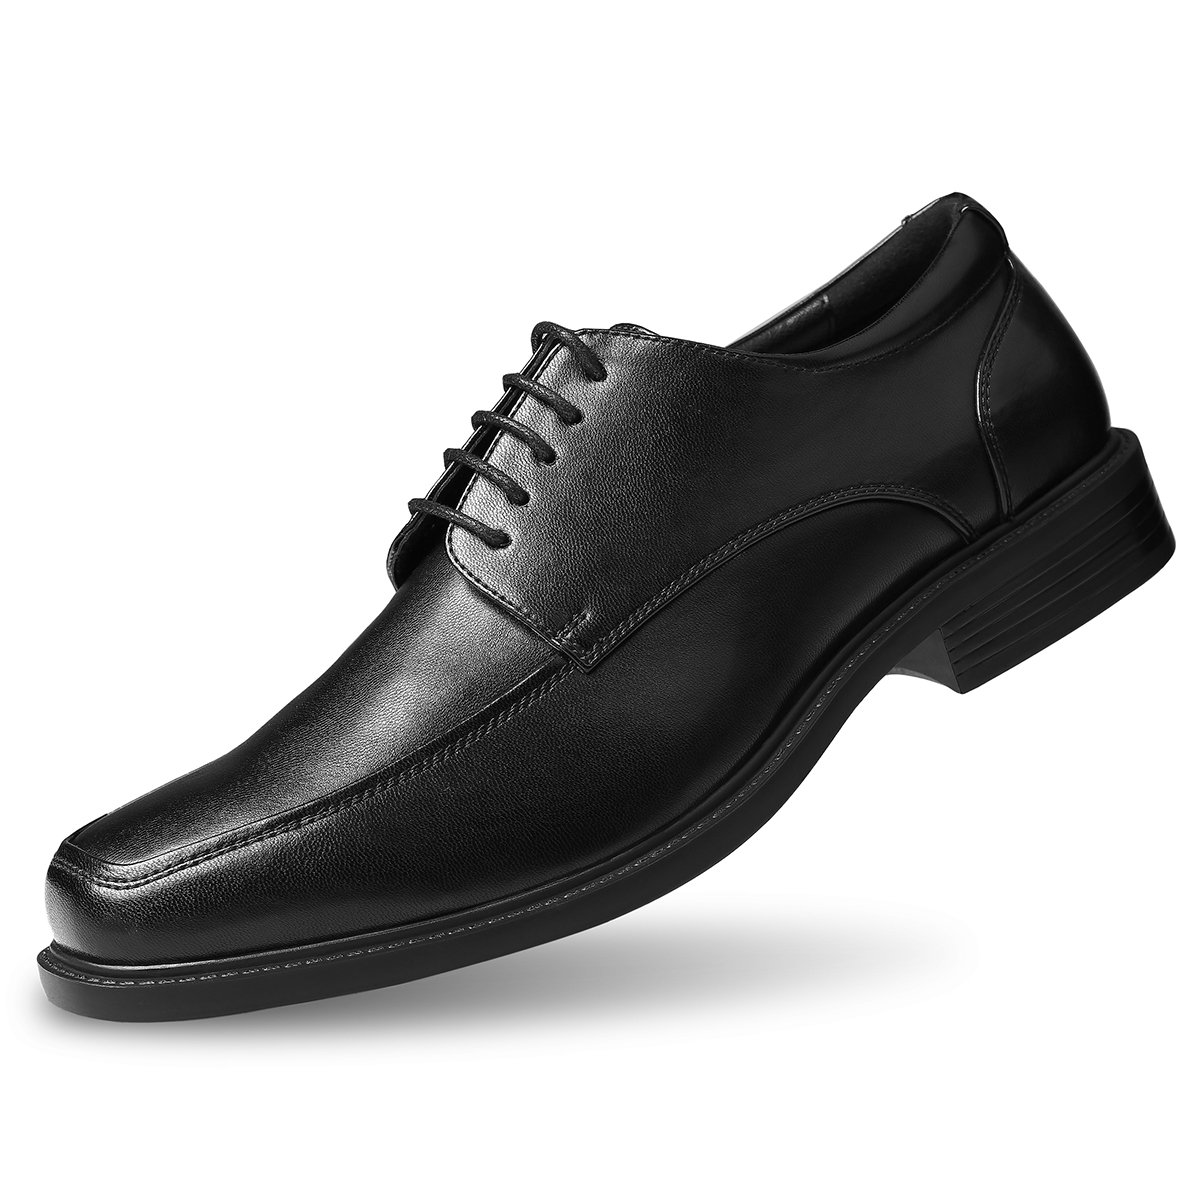 Men's Leather Dress Shoes Square Toe Lace up Oxfords Black 7.5